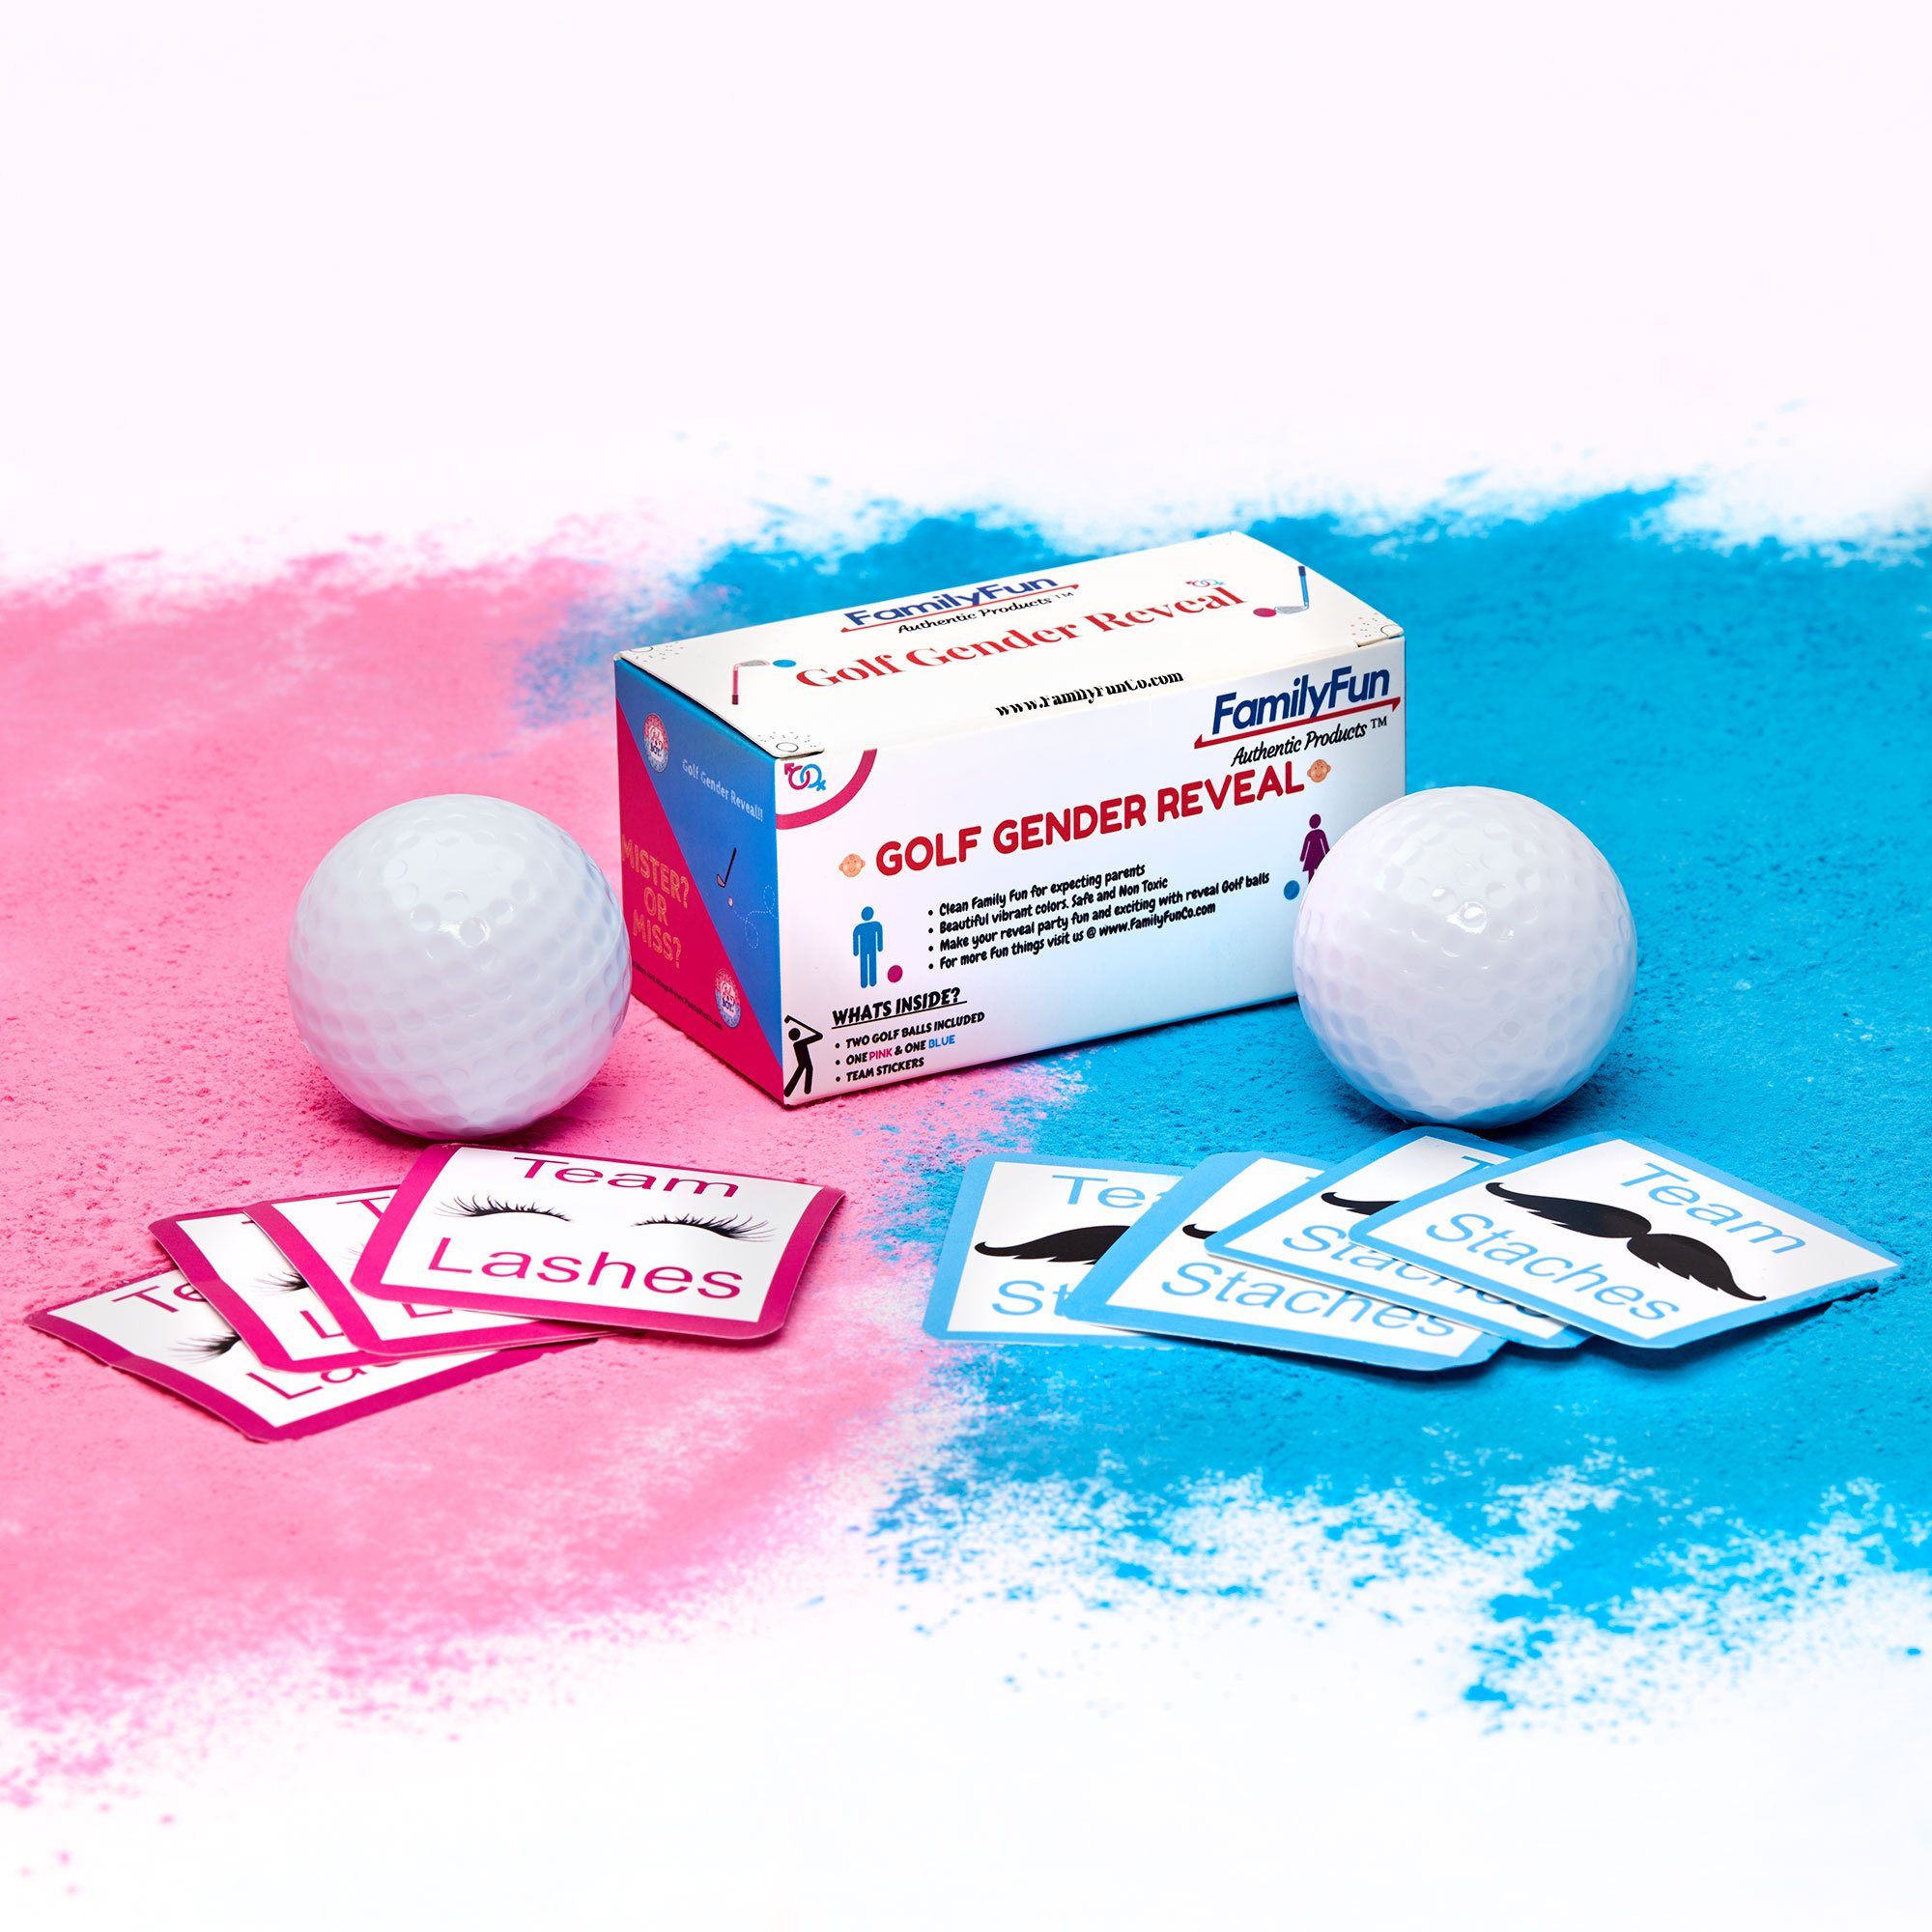 Gender Reveal Exploding Golf Balls Includes Bonus Golf Tee And Team Stickers -Pink And Blue Powder Included, Sex Reveal Party - Team Pink (Girl) And Team Blue (Boy) - FamilyFun Authentic Products by Rapid Start LLC